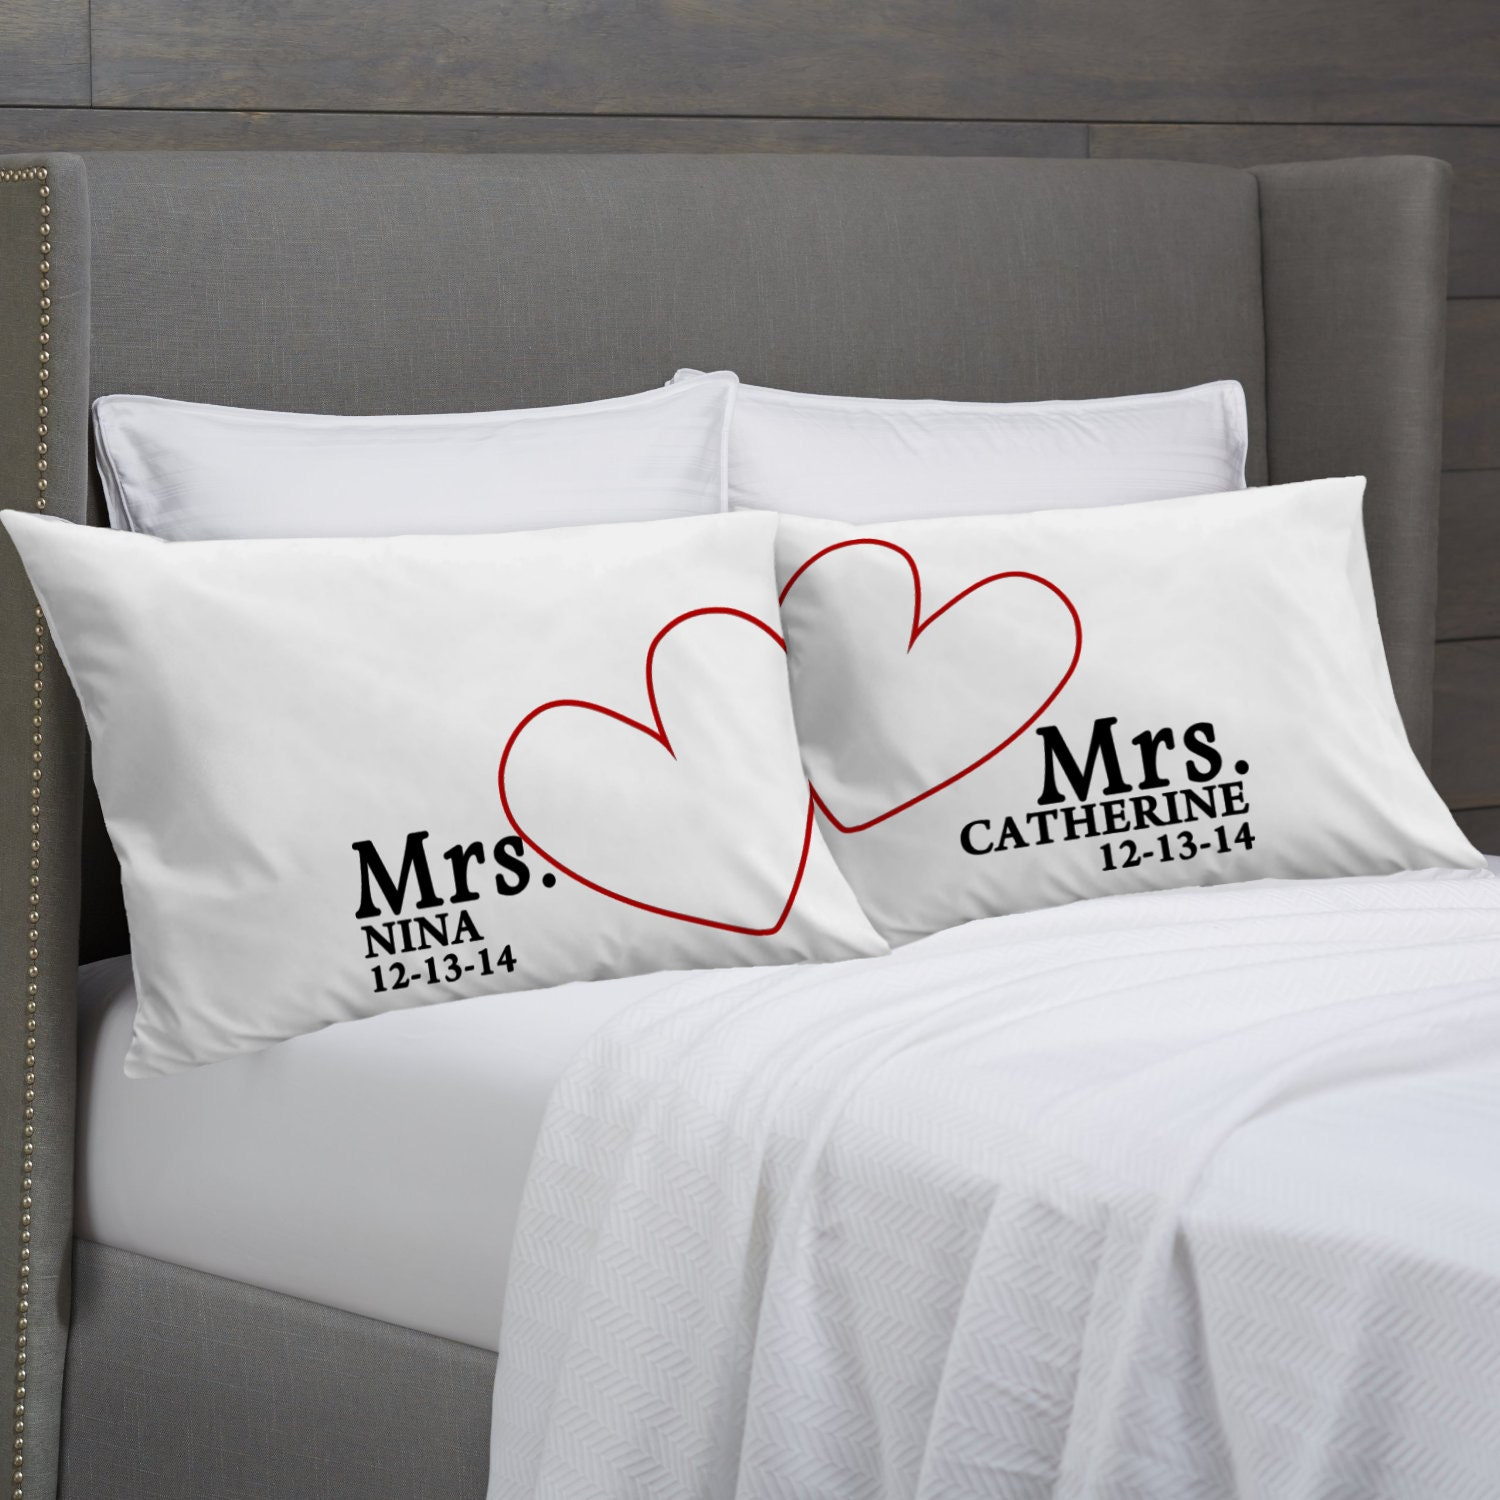 Wedding Gifts For Couples: MRS And MRS Personalized Pillowcases Lesbian Couple Gift Idea